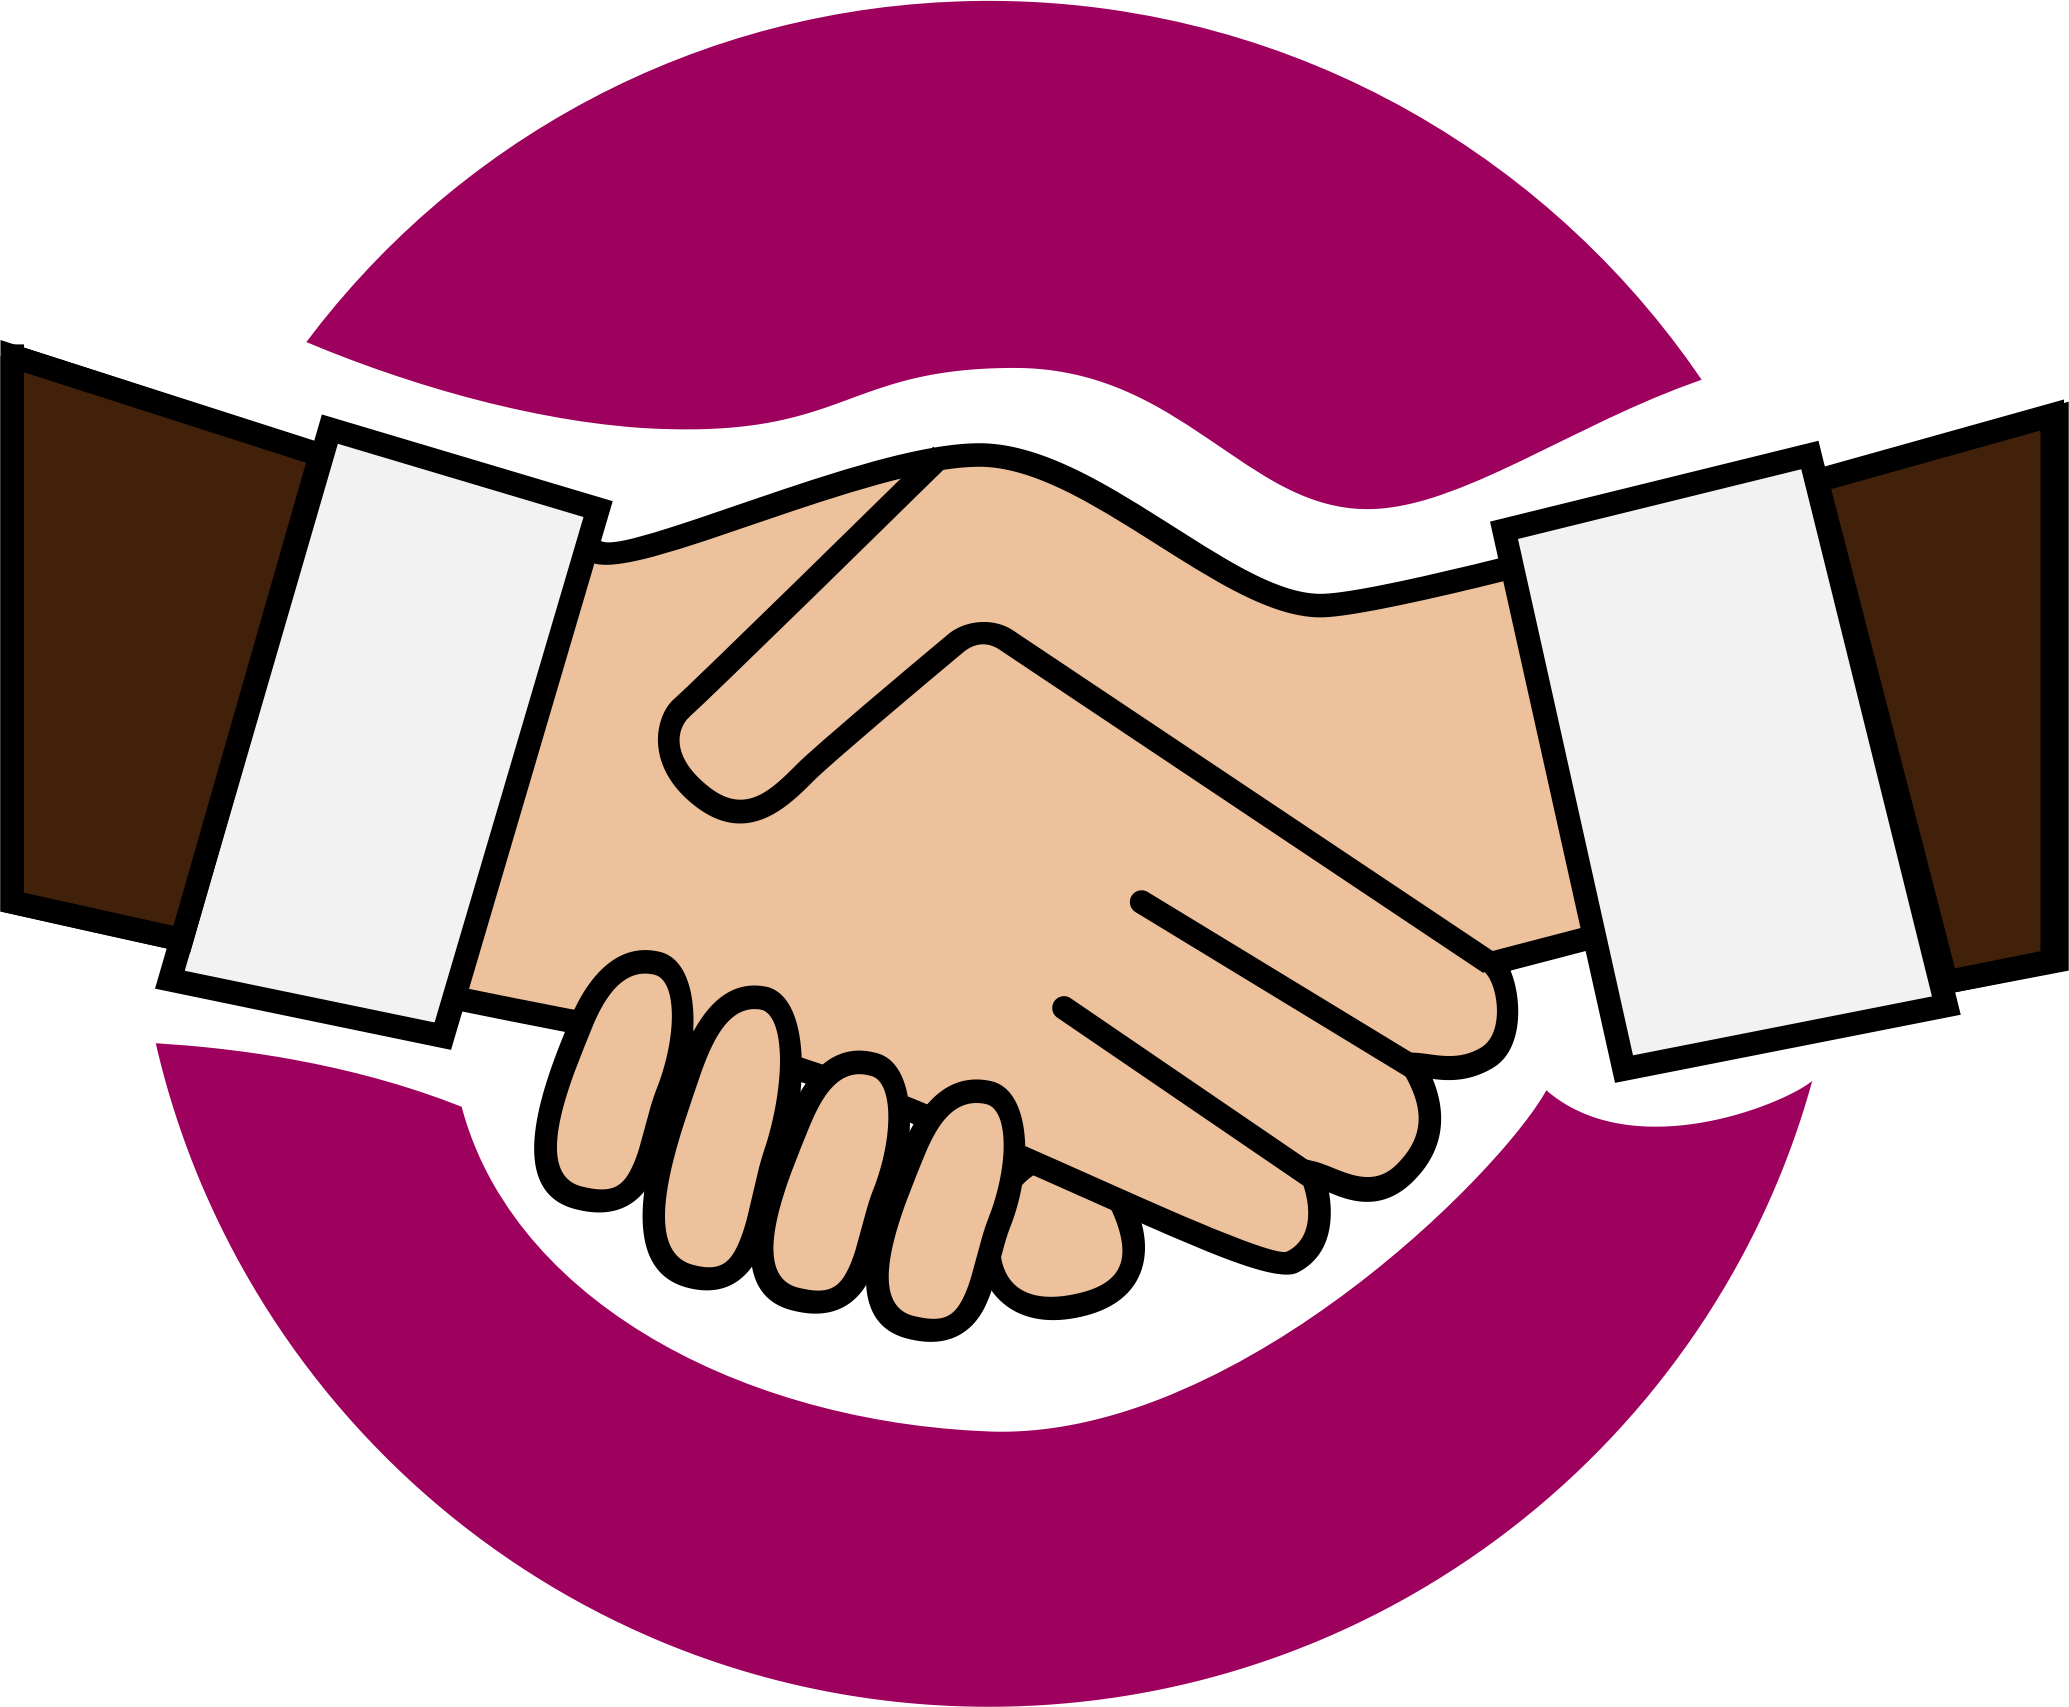 banner free Handshake clipart. A icon big image